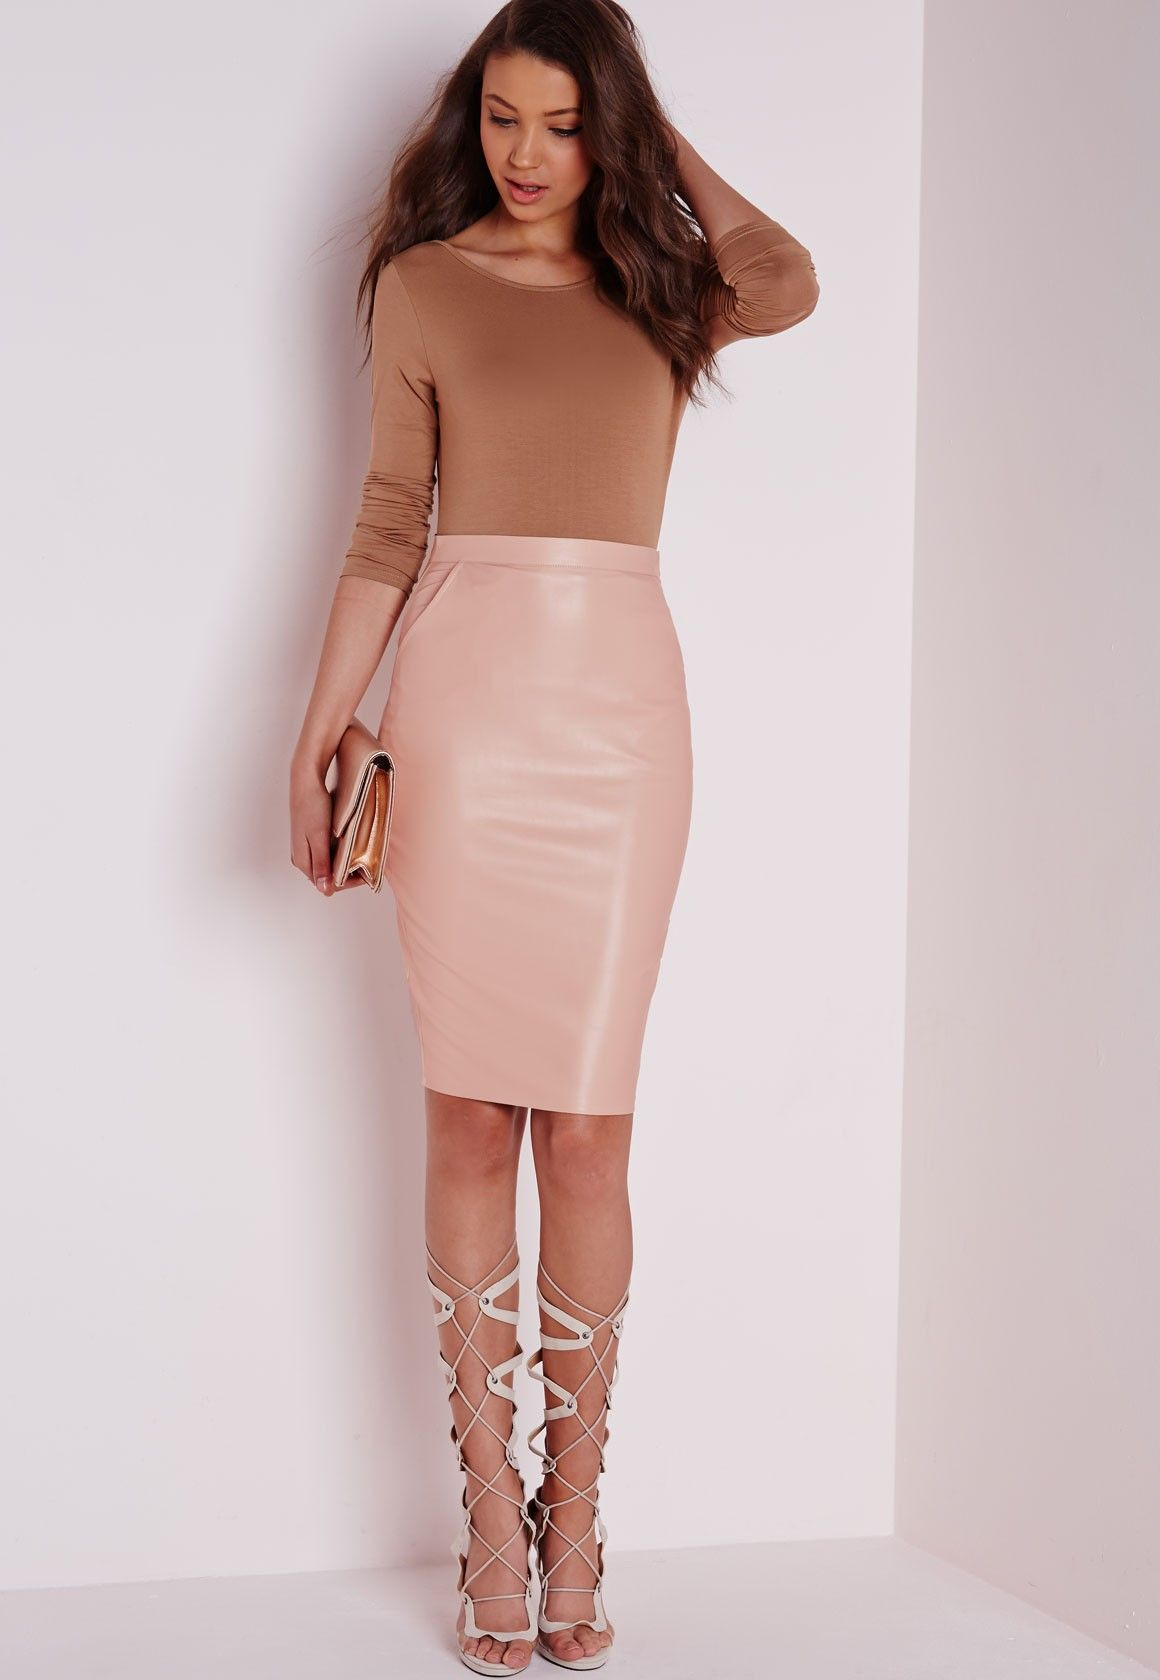 Stylish pencil skirt for all occasions